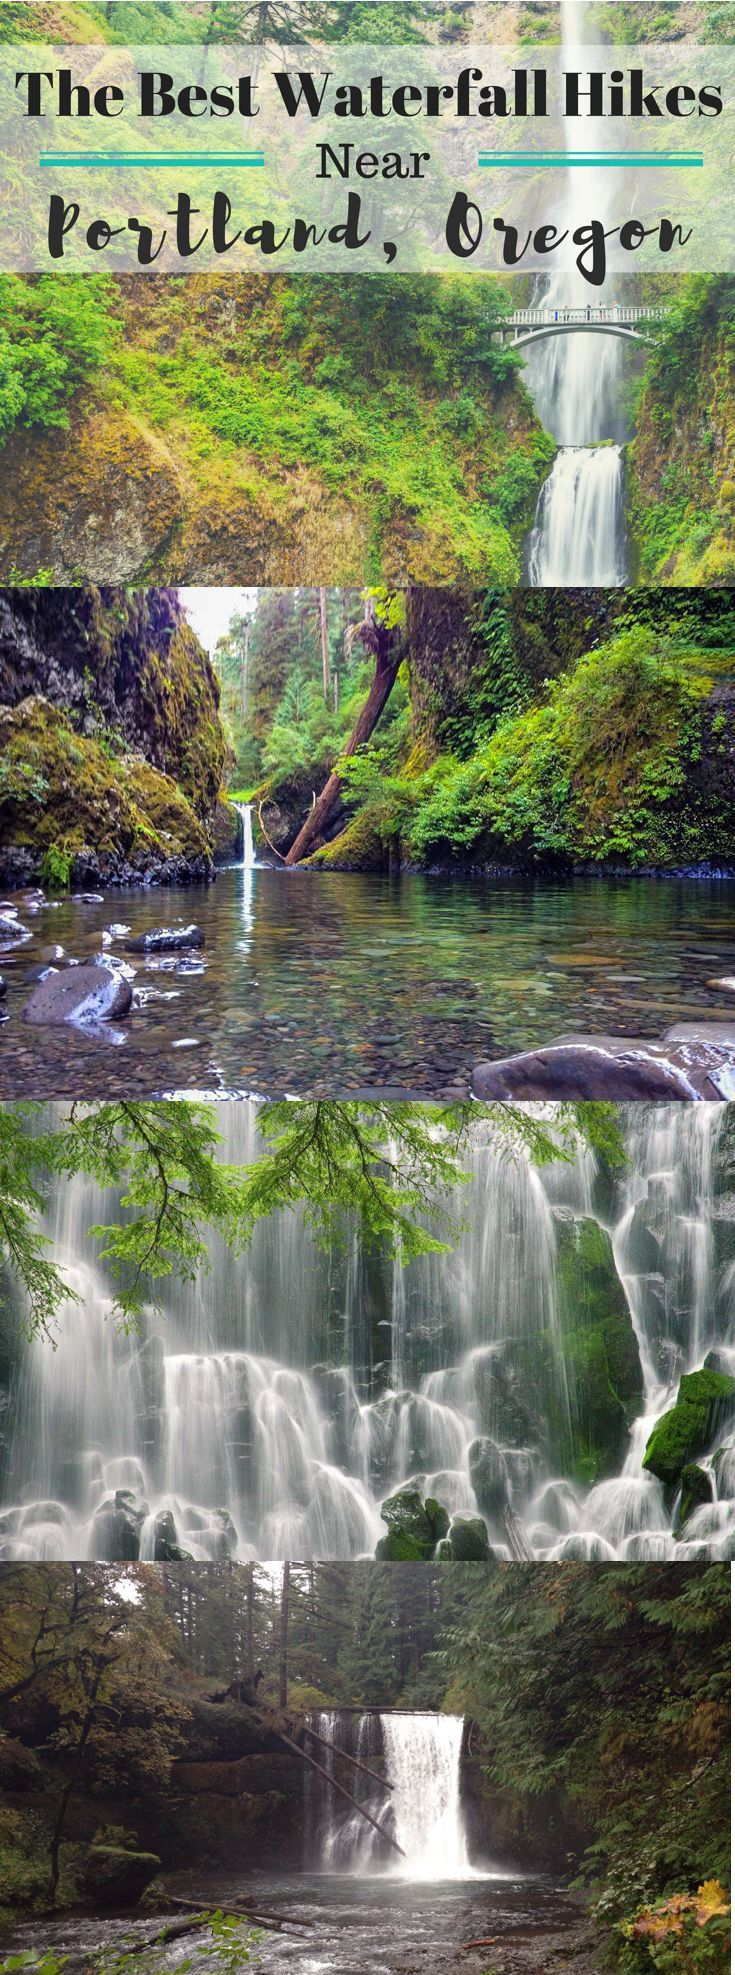 The Best Waterfall Hikes Near Portland, Oregon